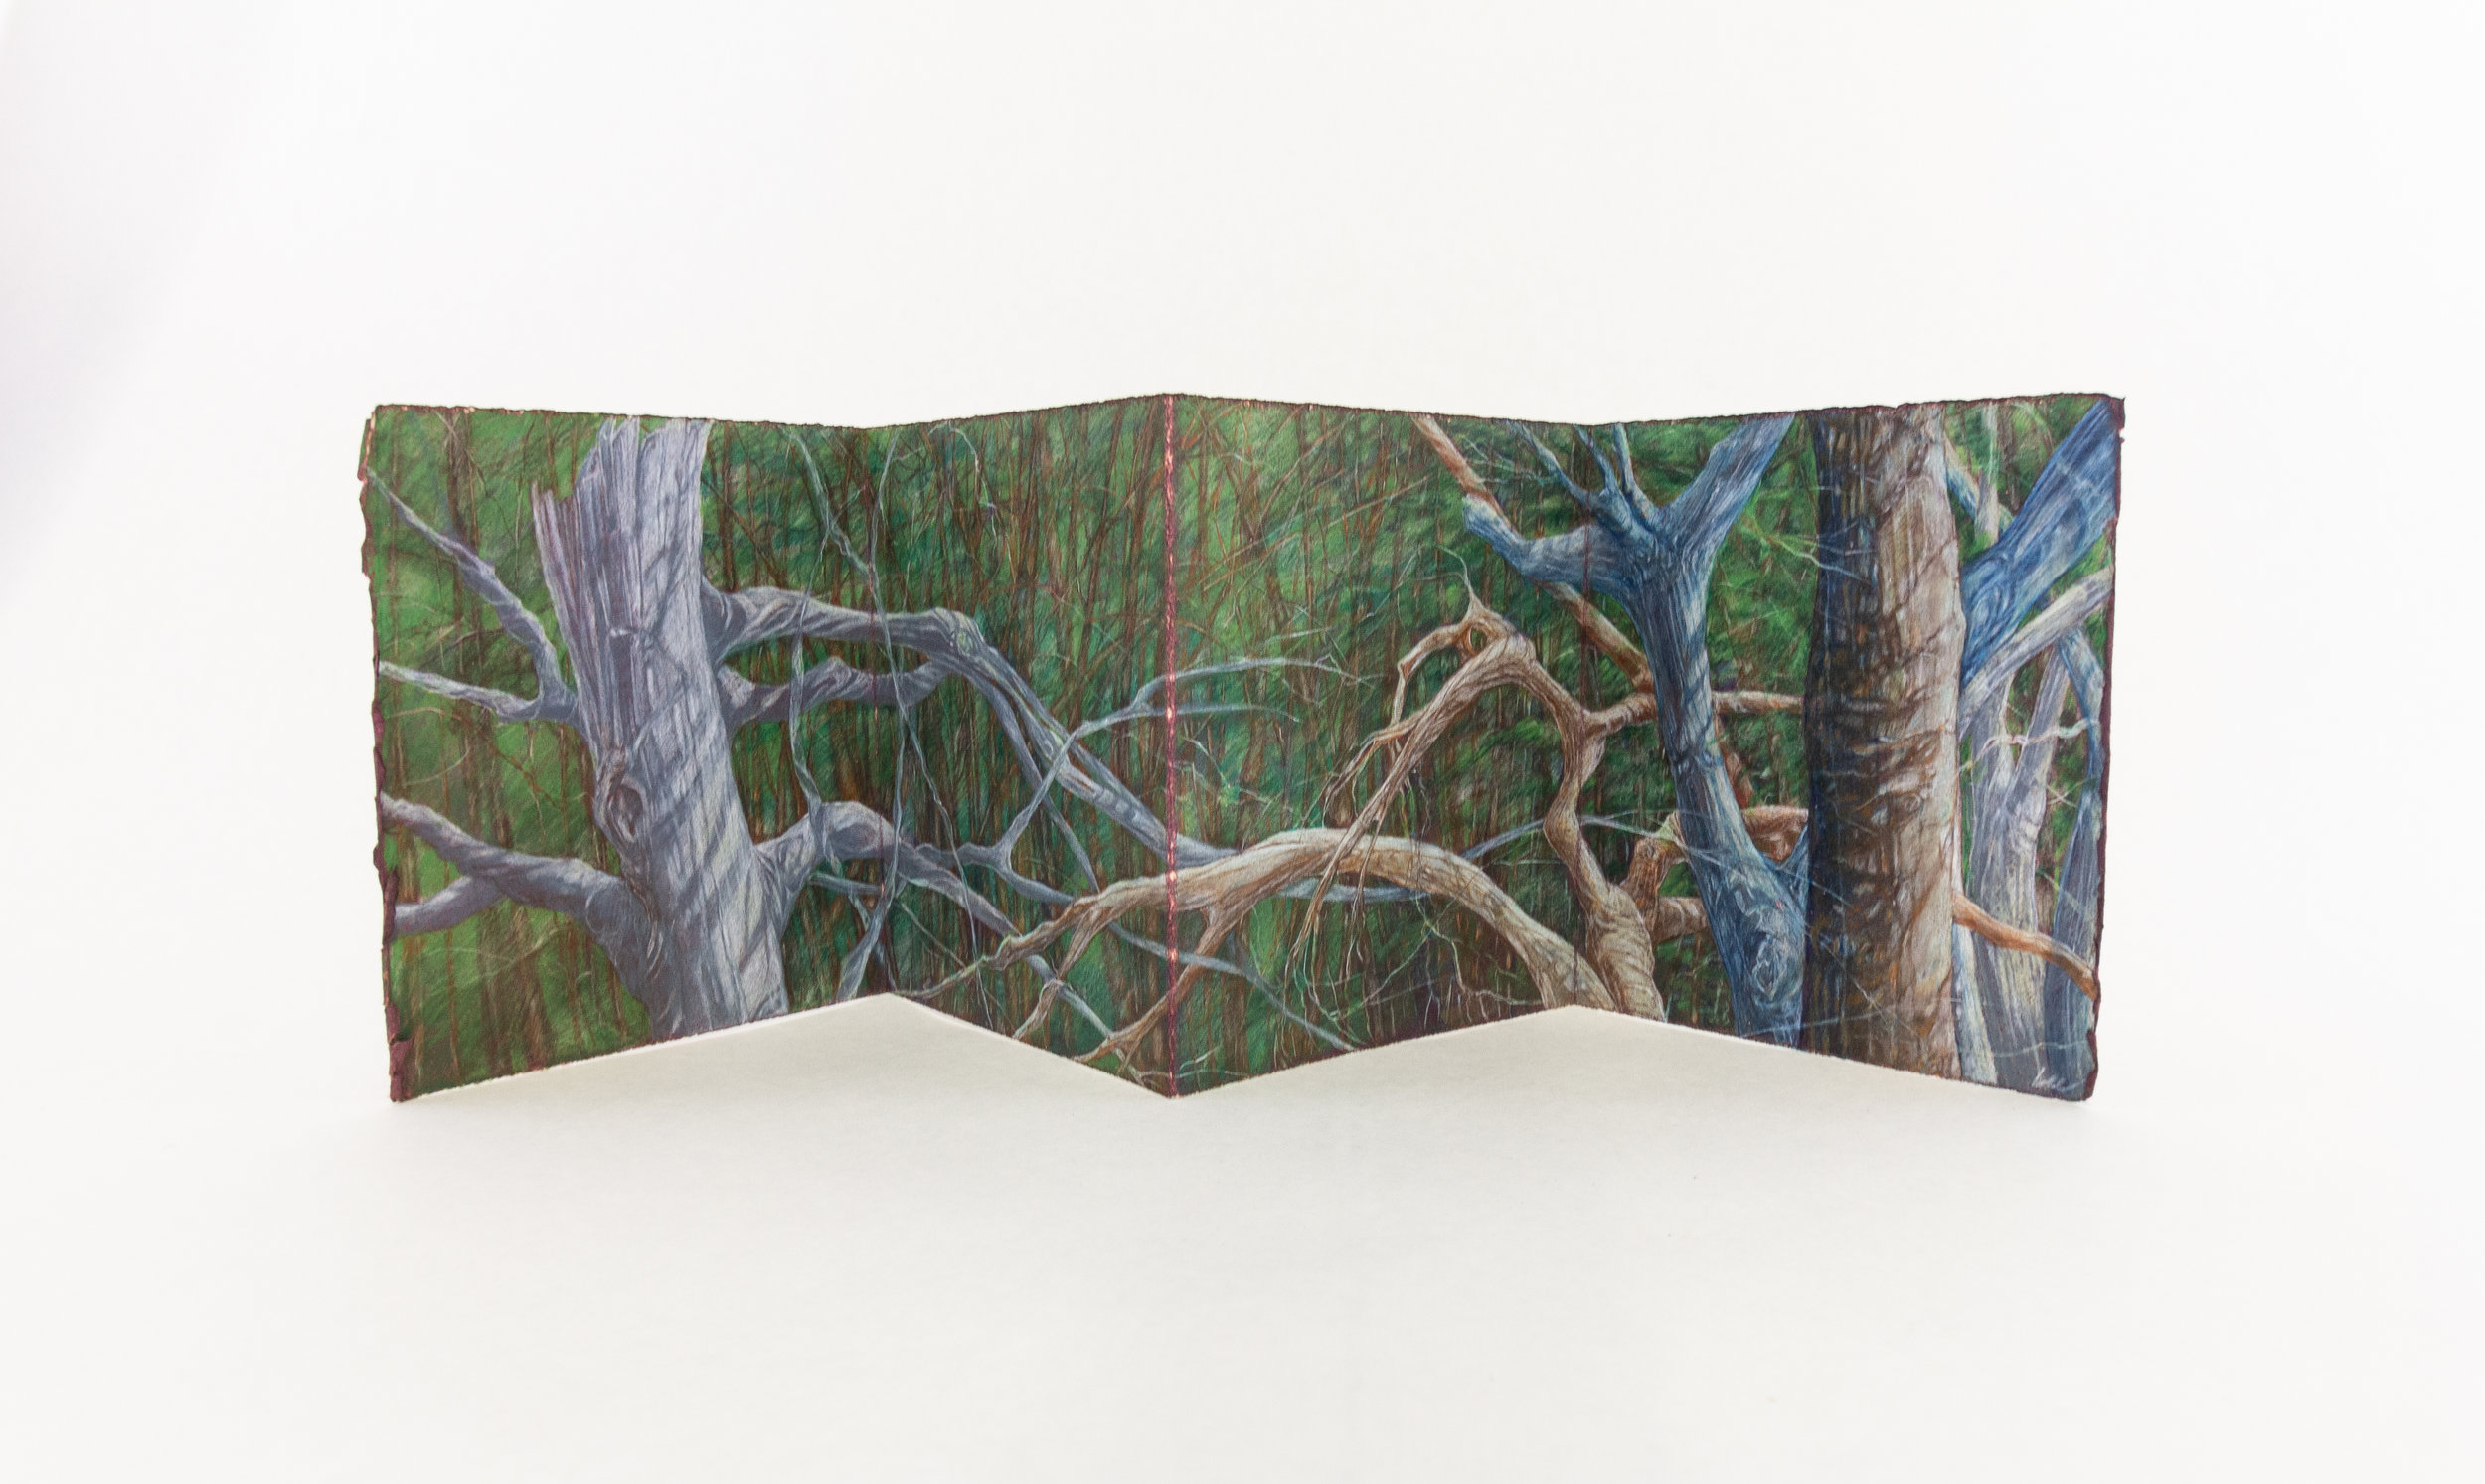 """Honore Lee, """"Wild Place,"""" Prismacolor pencil on hand-dyed paper, 2019, $150, Kalamazoo, MI"""